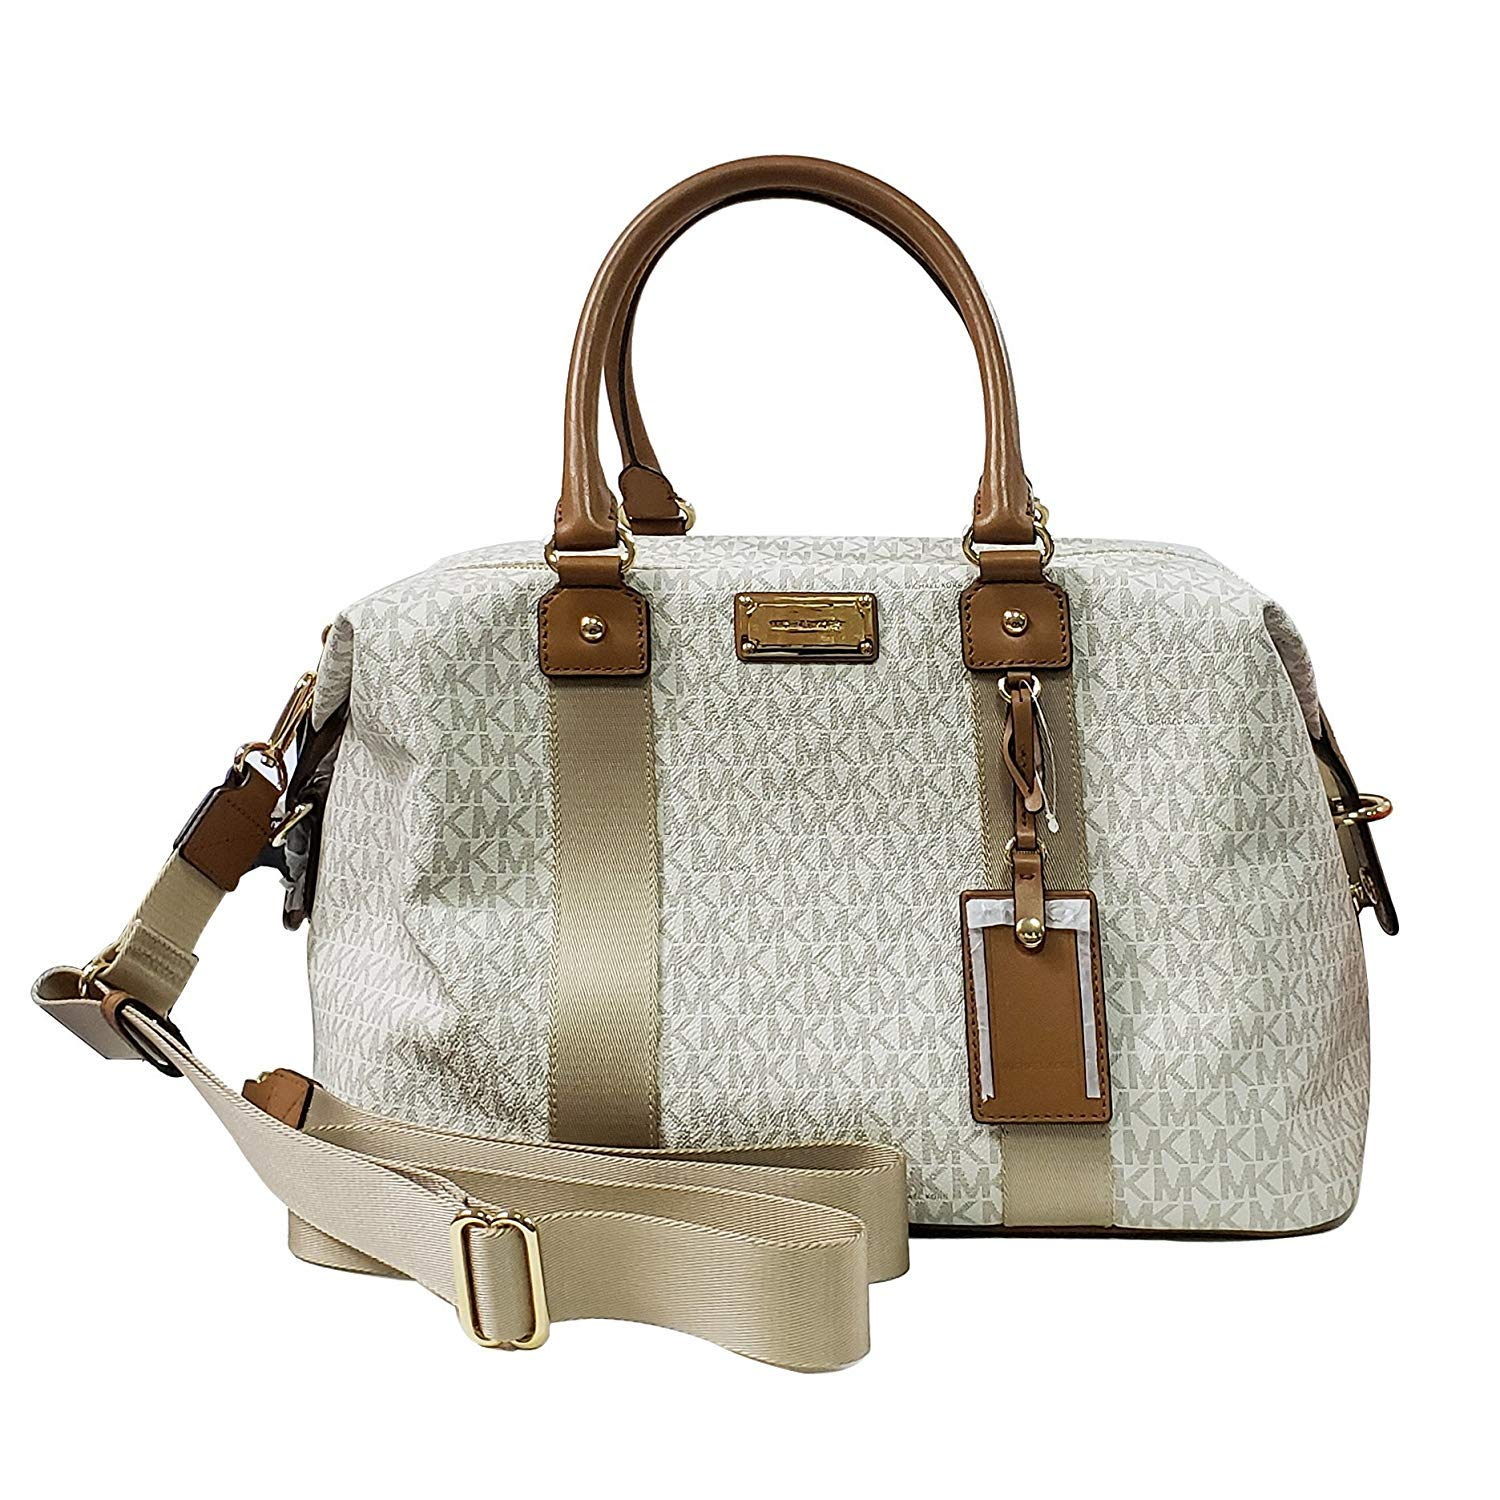 be8c2d8ee88a Amazon.com: Michael Kors LG large travel bag weekender purse MK vanilla  acorn brown: Clothing